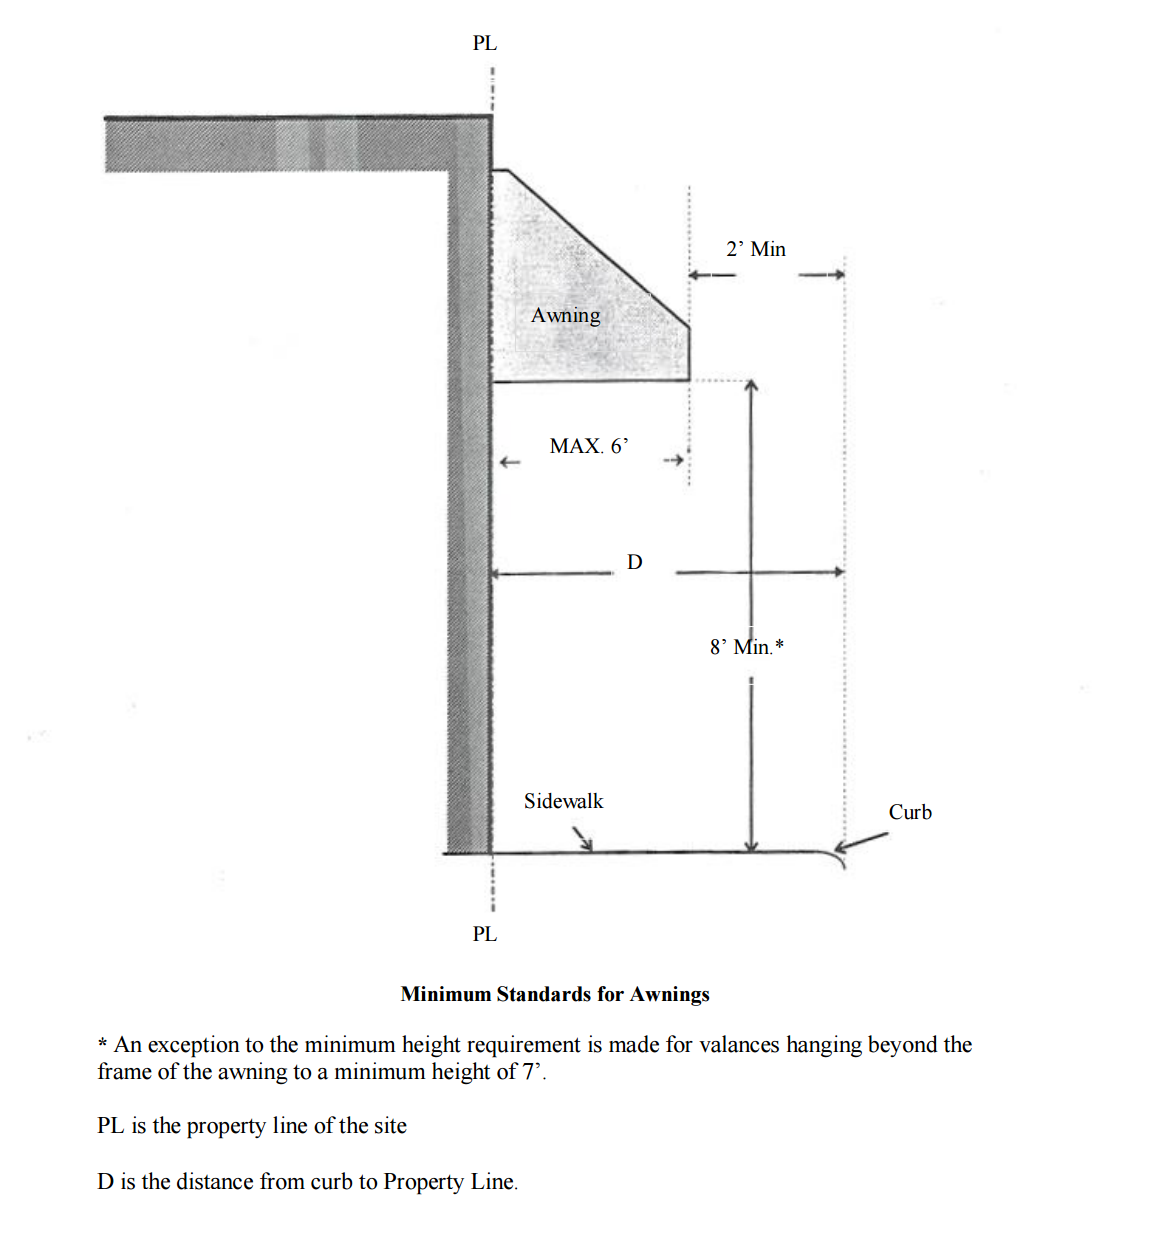 minimum standards for awnings diagram